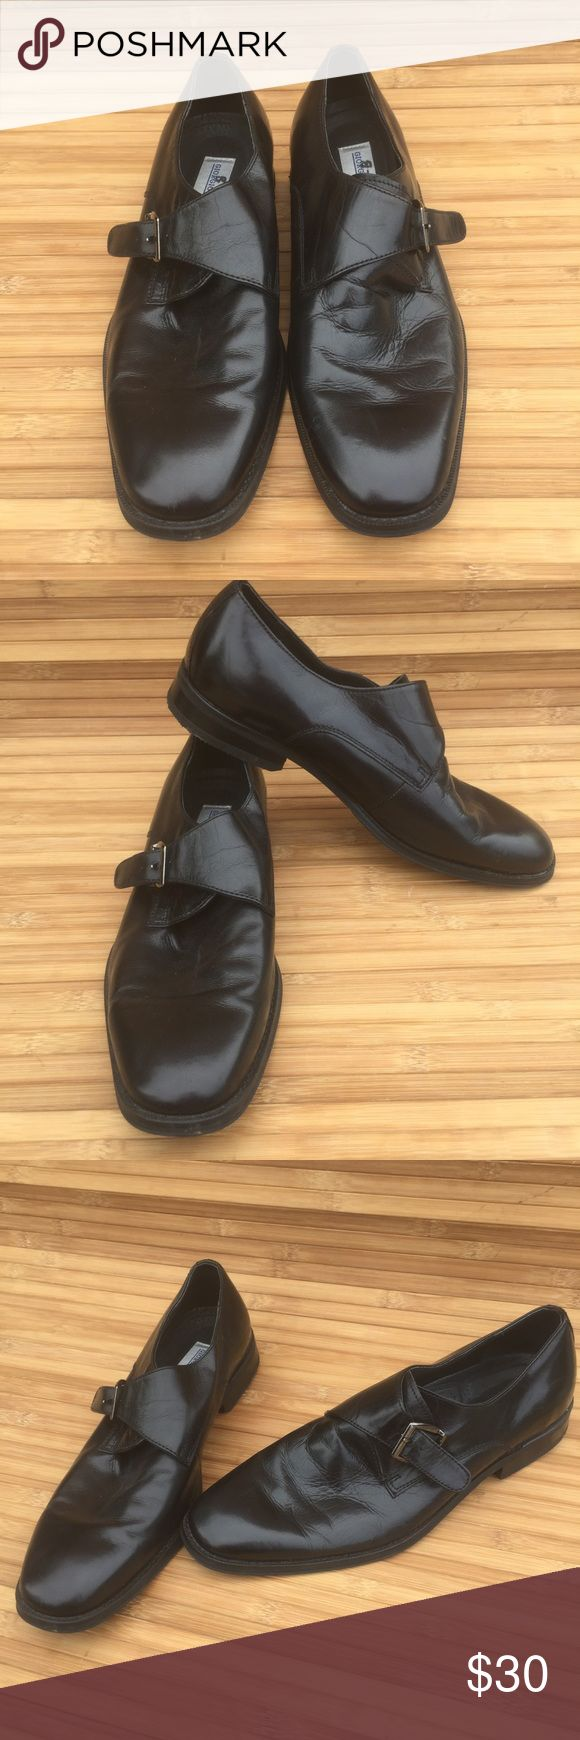 Giorgio Brutini Buckle Shoes Gorgeous leather men's dress shoes with silver buckle in great condition. Nice designer in an 8.5. Giorgio Brutini Shoes Oxfords & Derbys